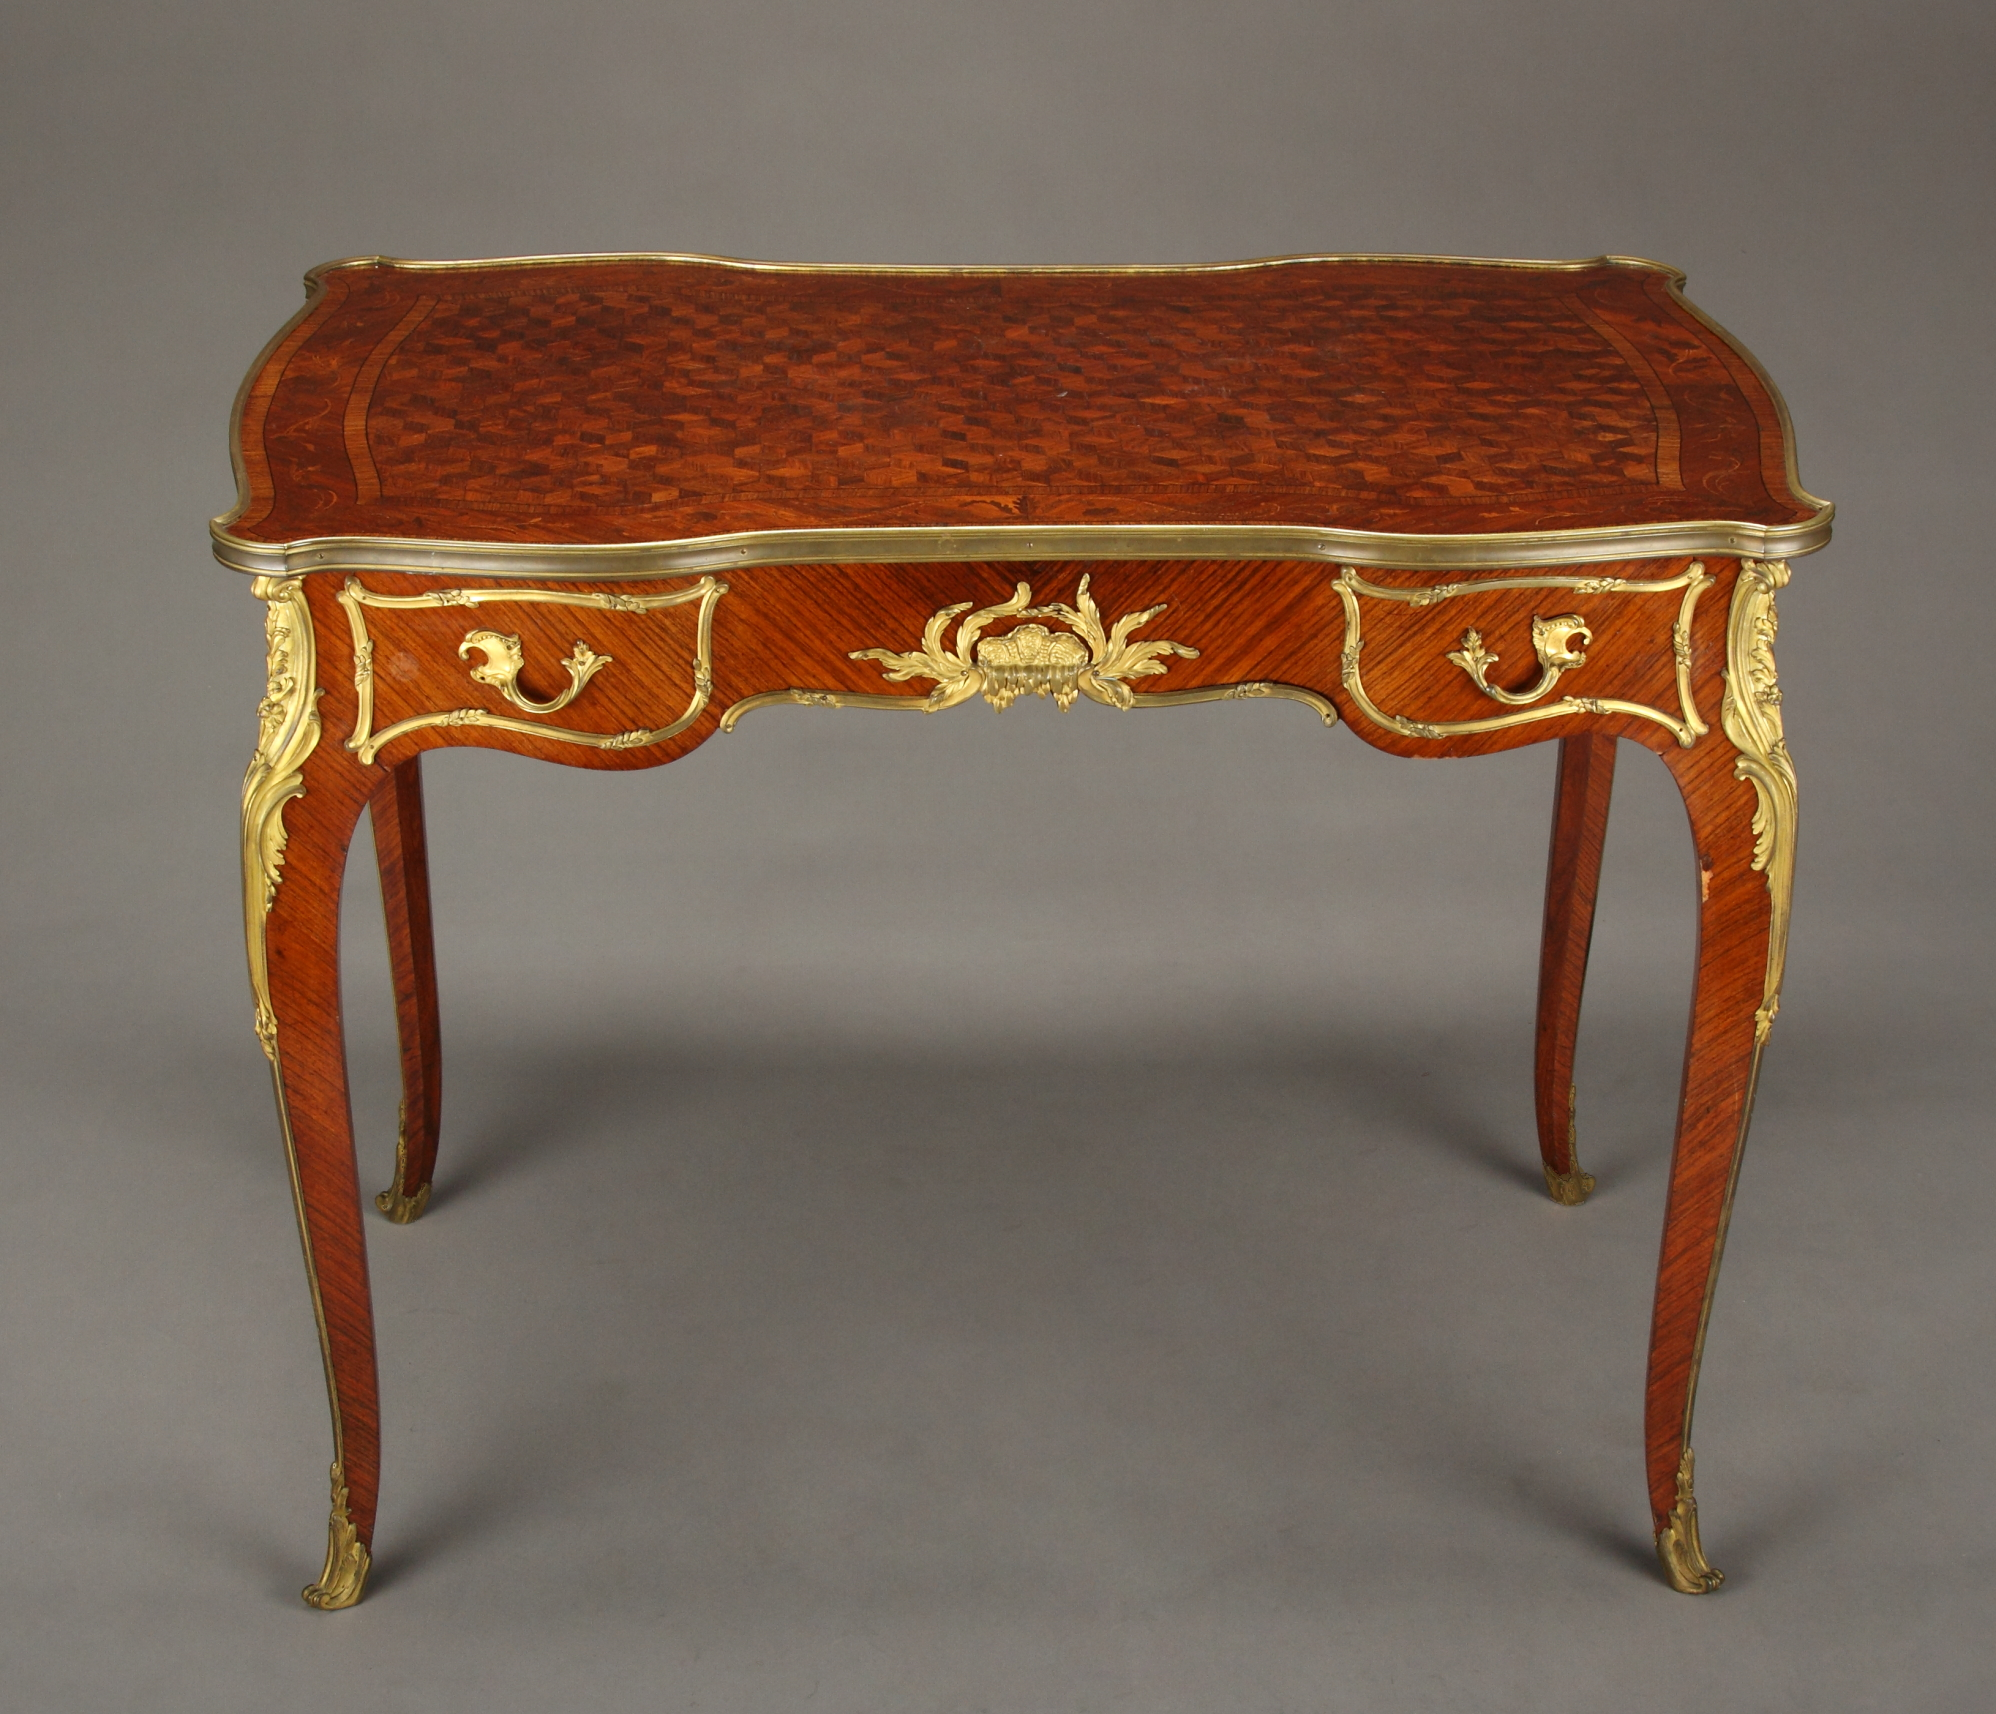 A 19th century french louis xv style burea plat by for Furniture in french